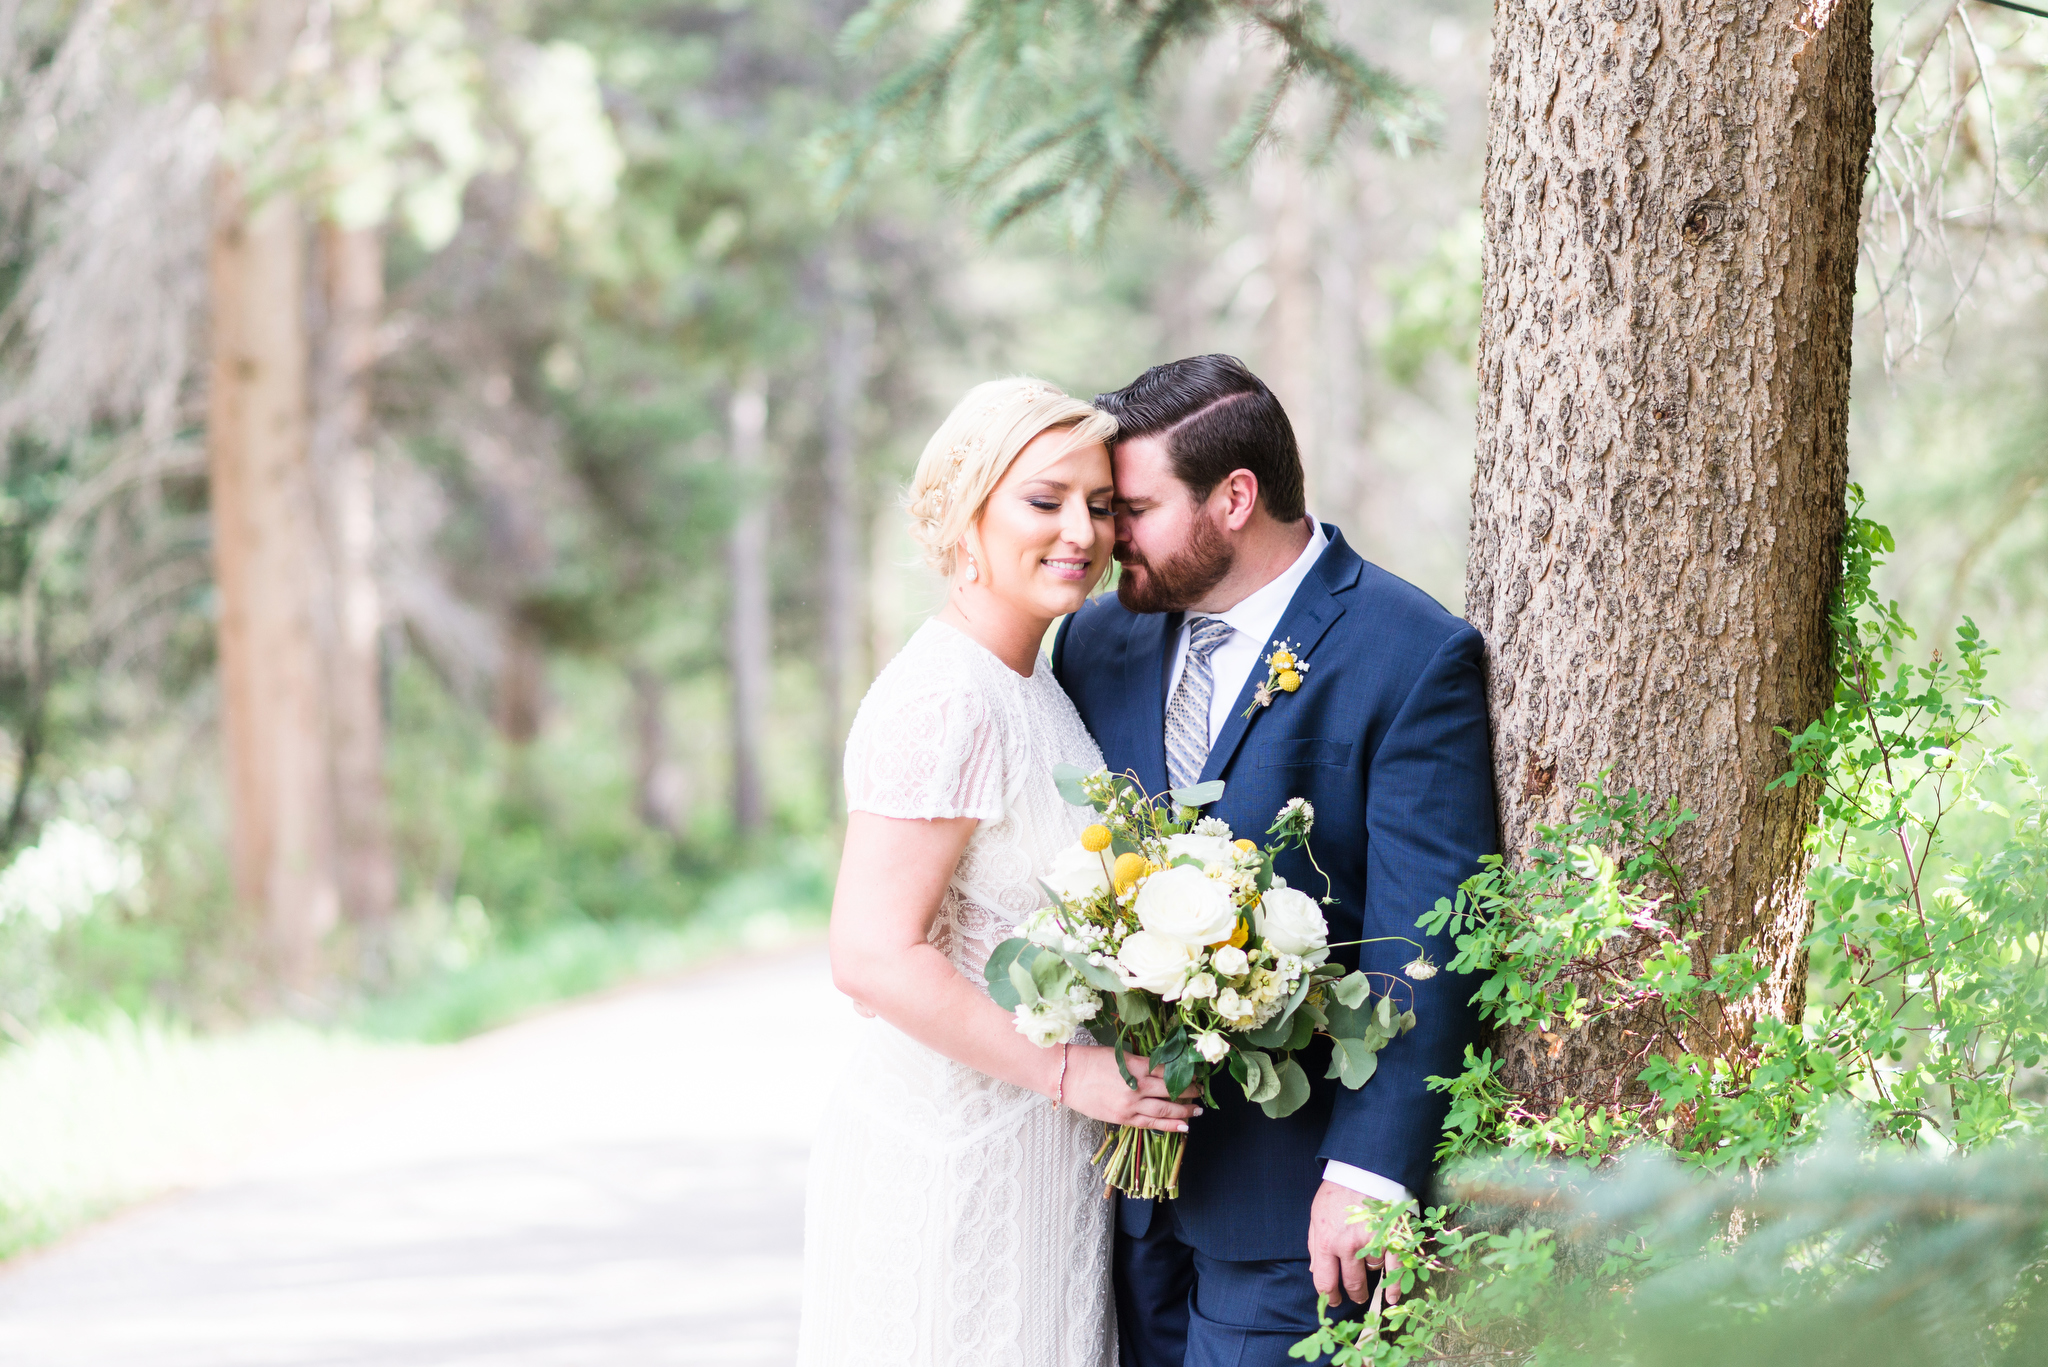 A Rustic Chic Vail Colorado Wedding - The Overwhelmed Bride Wedding Ideas Inspiration Blog